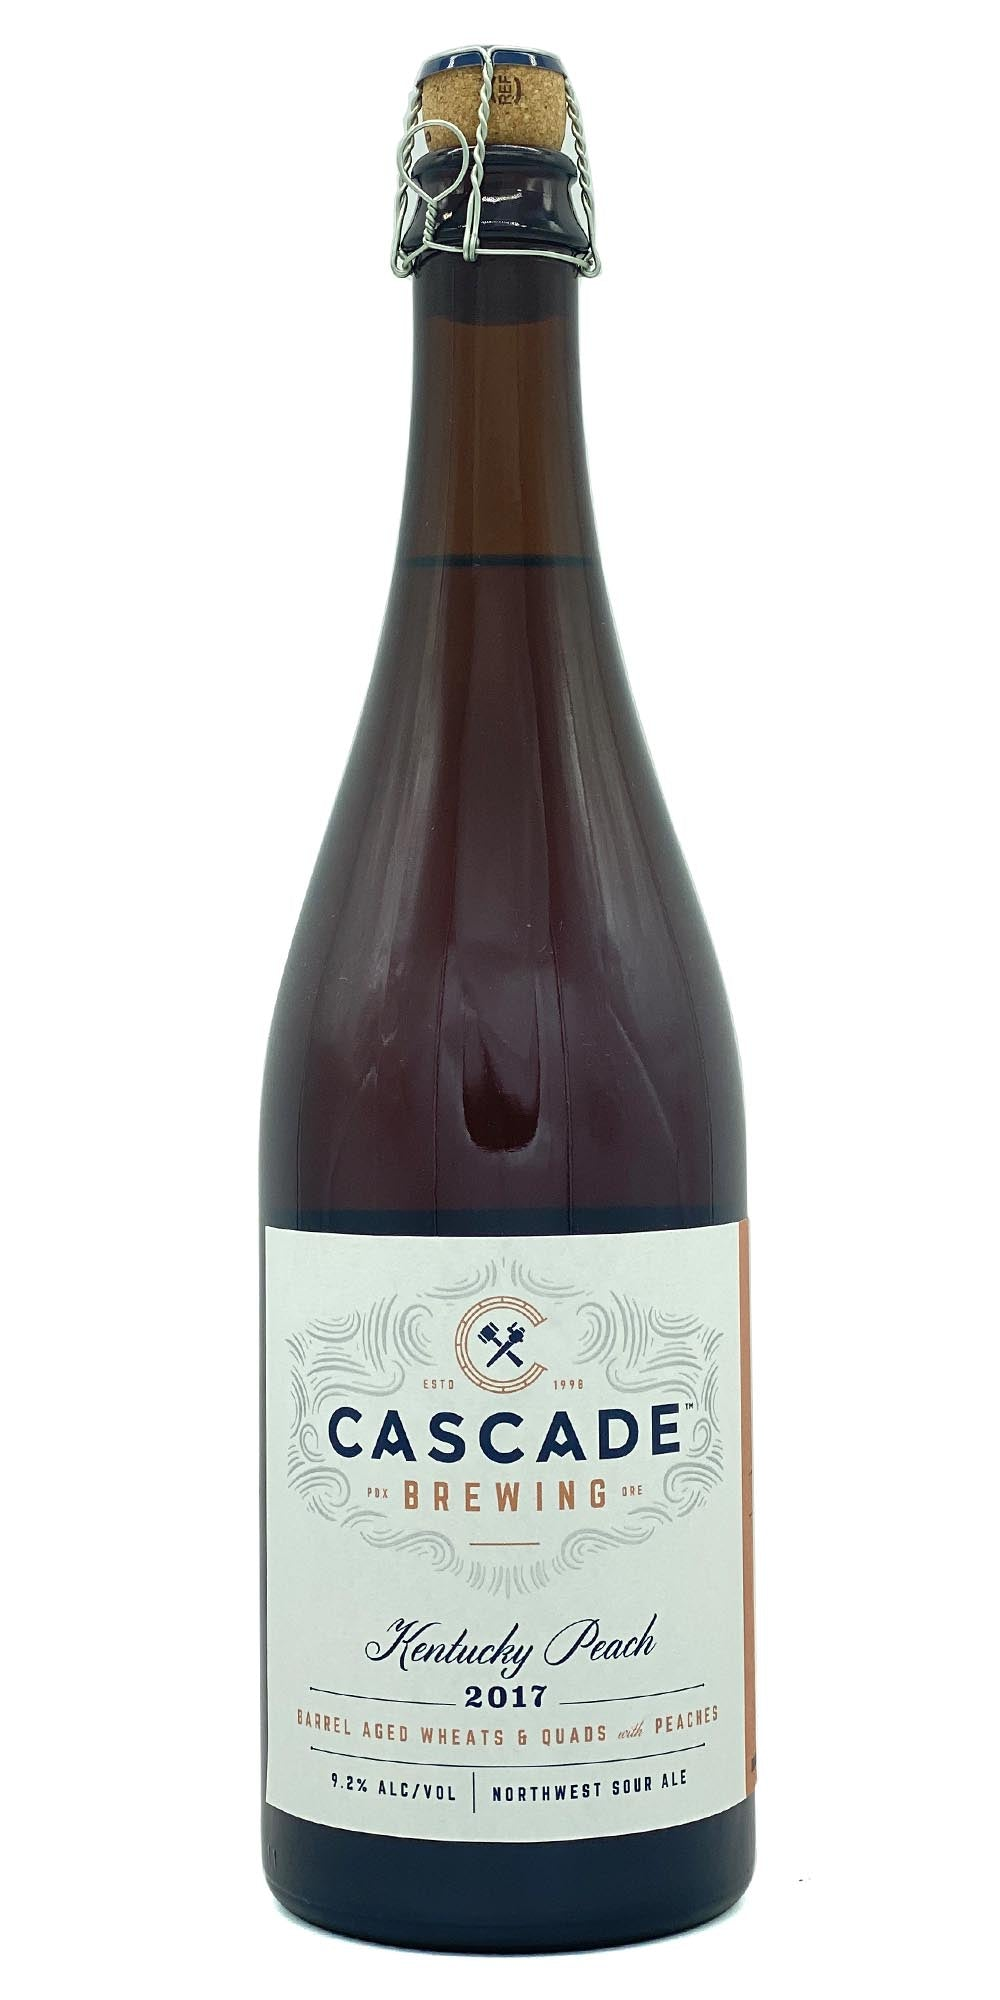 Cascade Brewing - Kentucky Peach 2017 - Drikbeer - Order Craft Beer Online